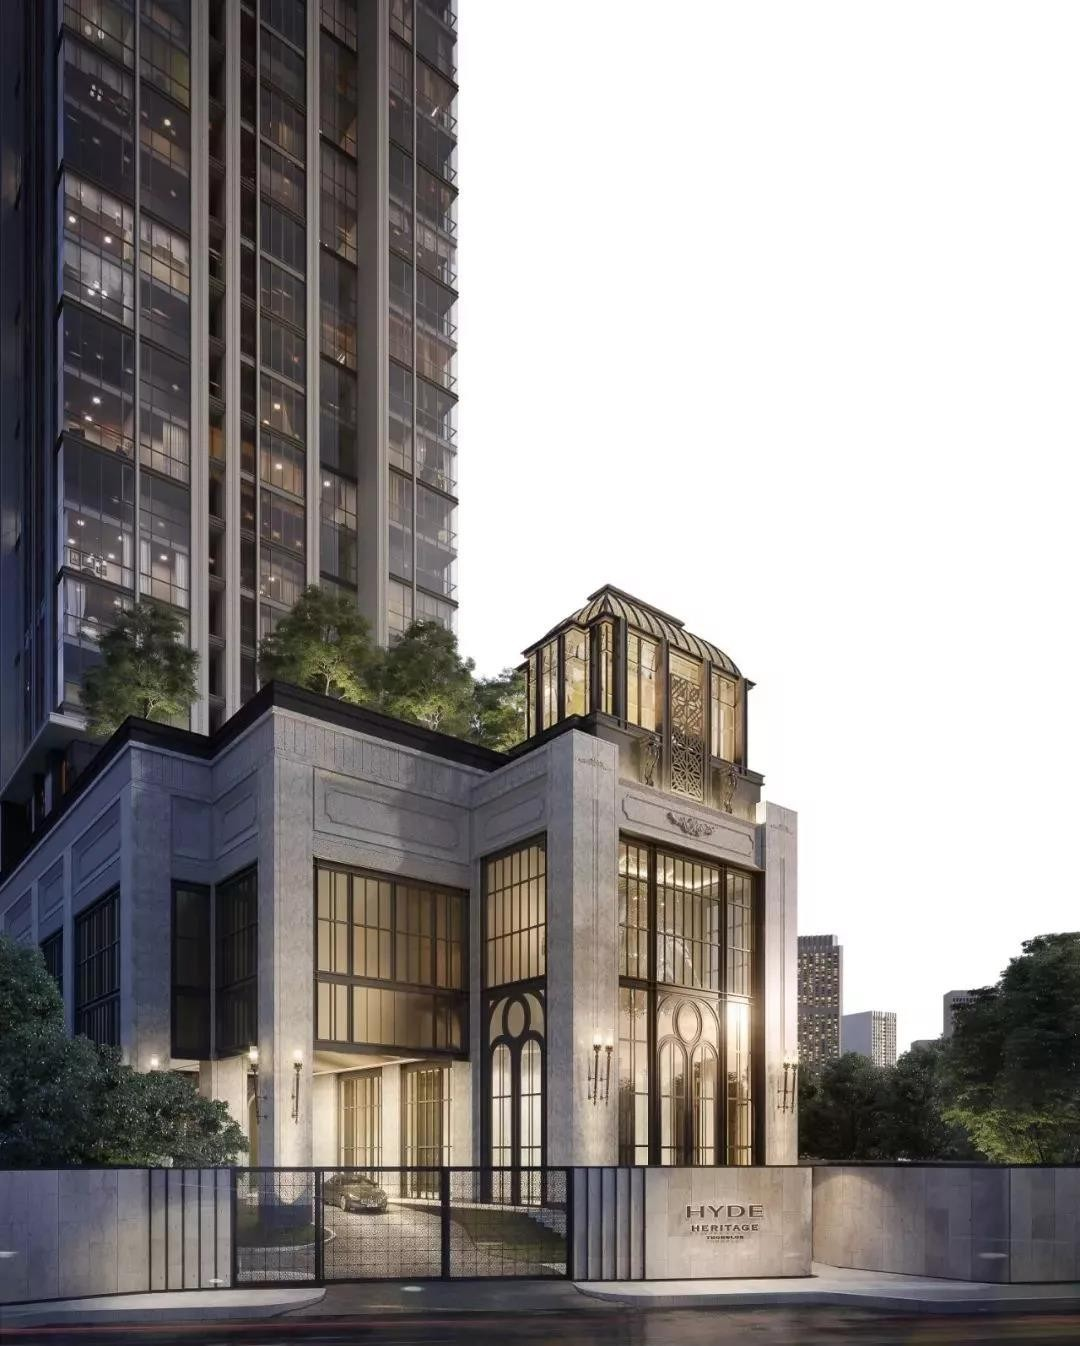 Hyde Heritage Thonglor